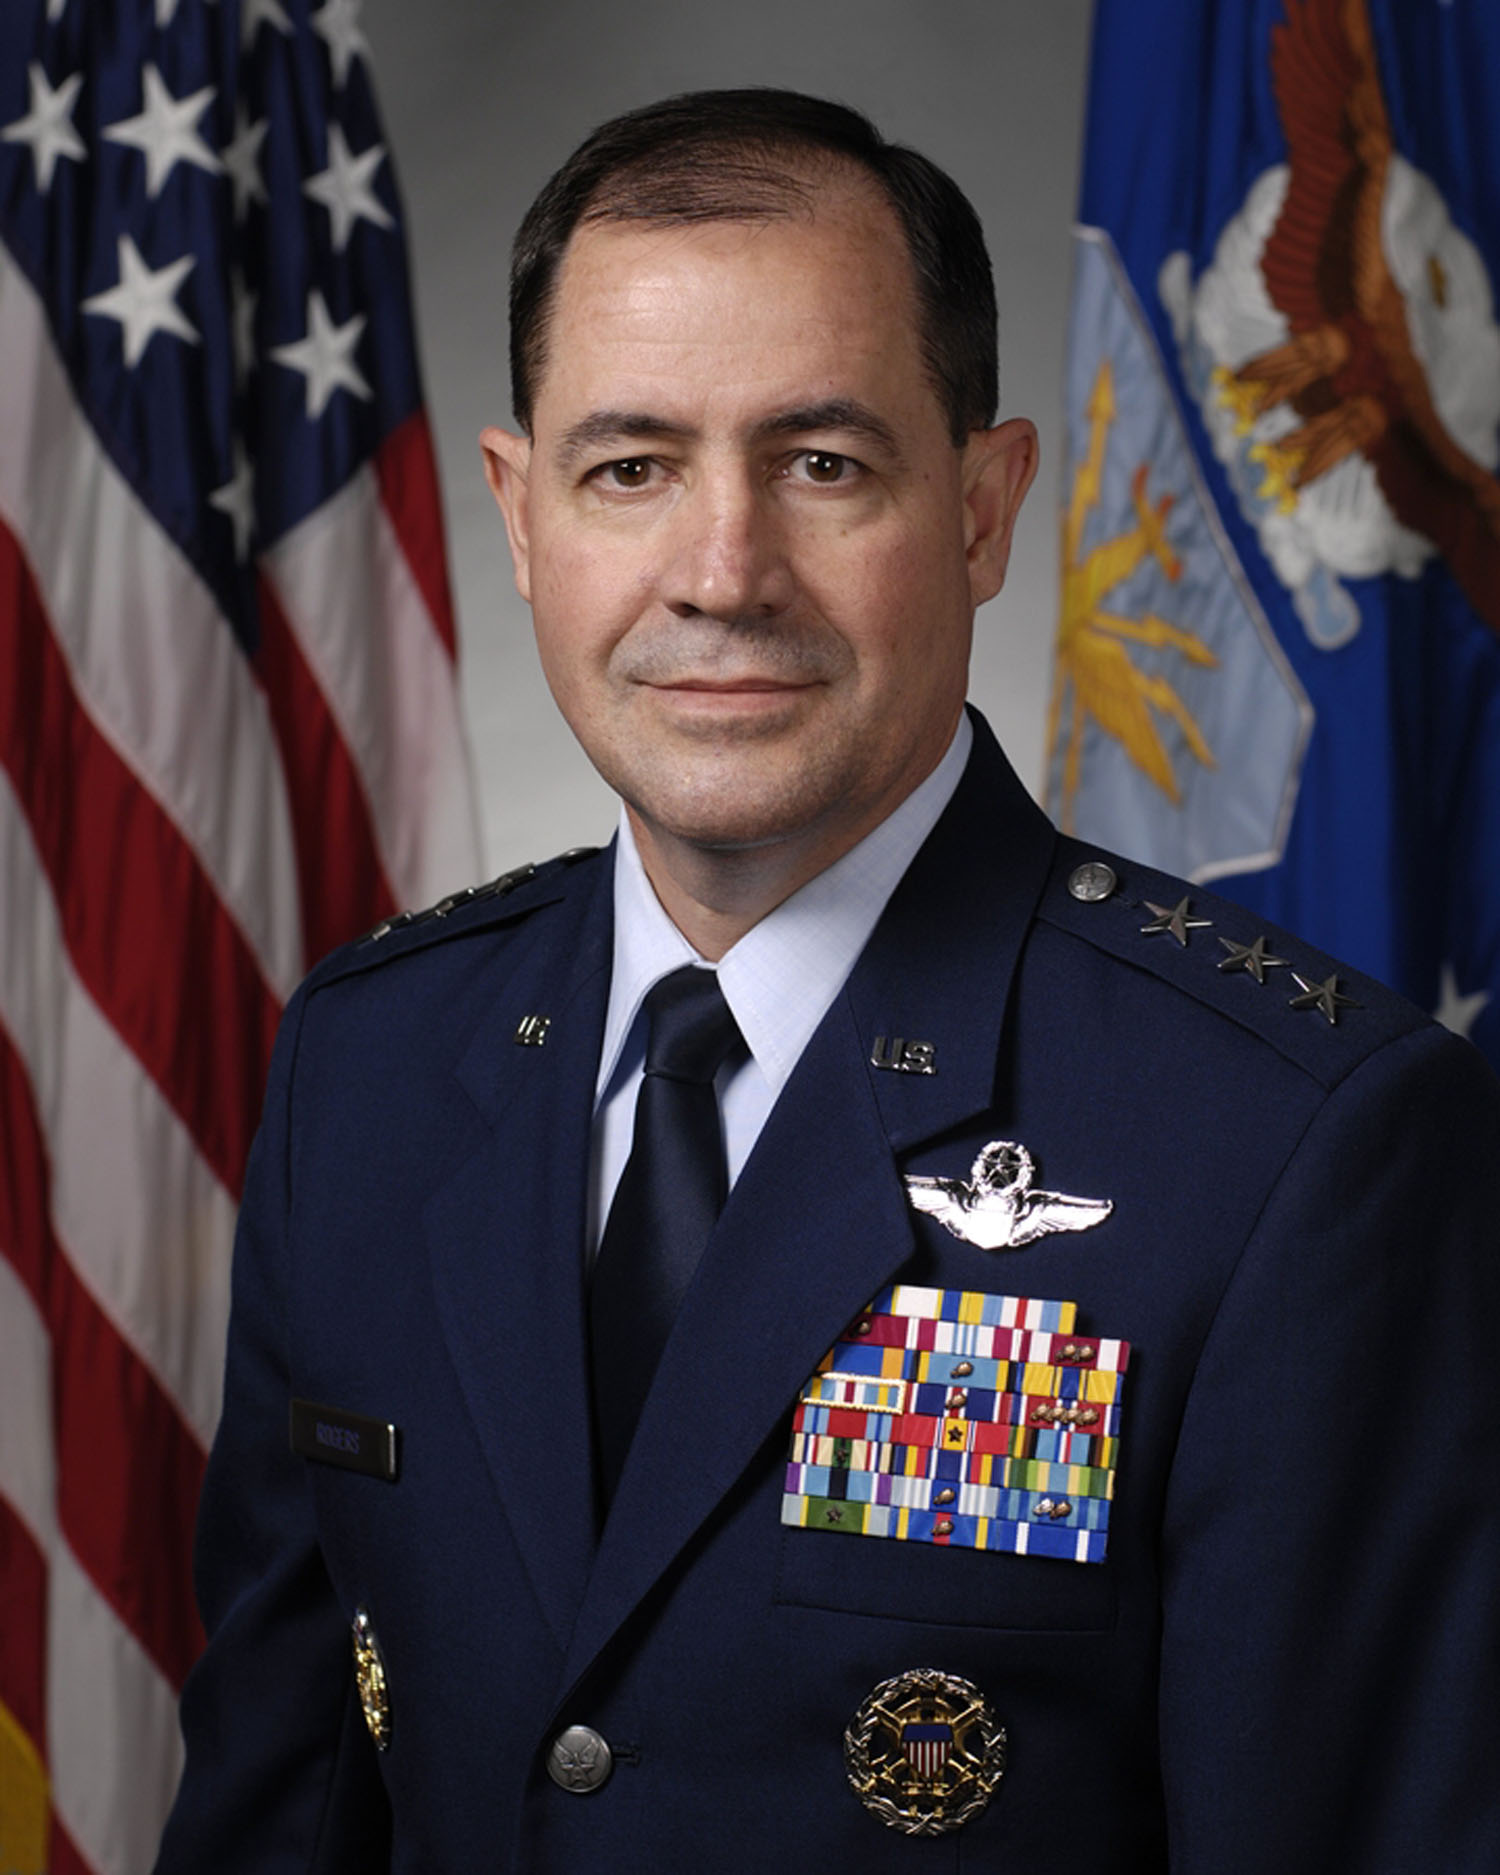 Biographies: LIEUTENANT GENERAL MARC E. ROGERS > U.S. Air Force